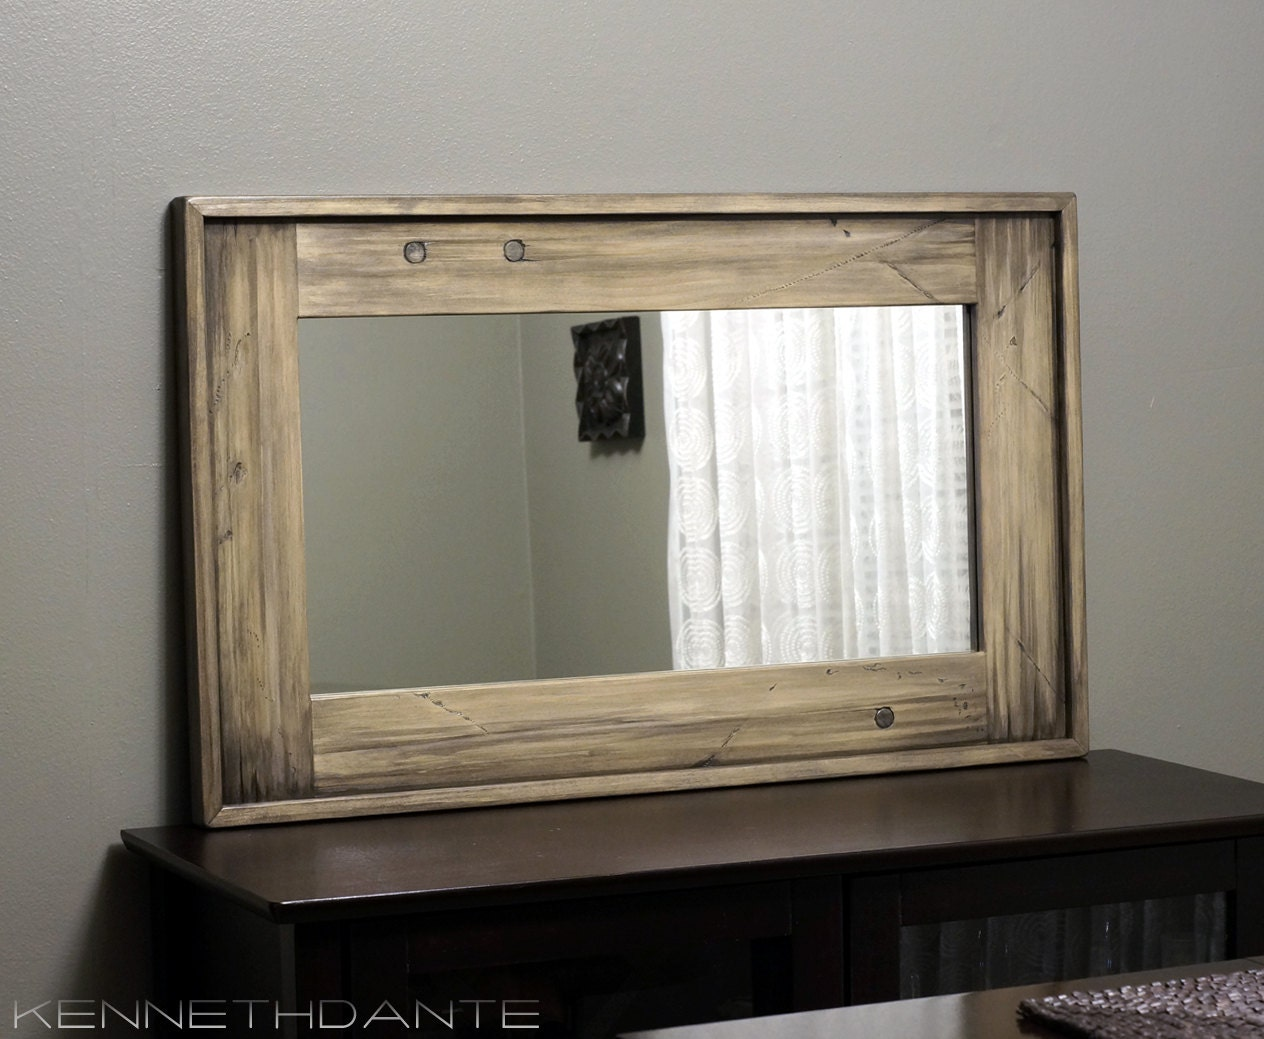 Rustic wood framed mirror distressed farmhouse by kennethdante for Wood framed mirrors